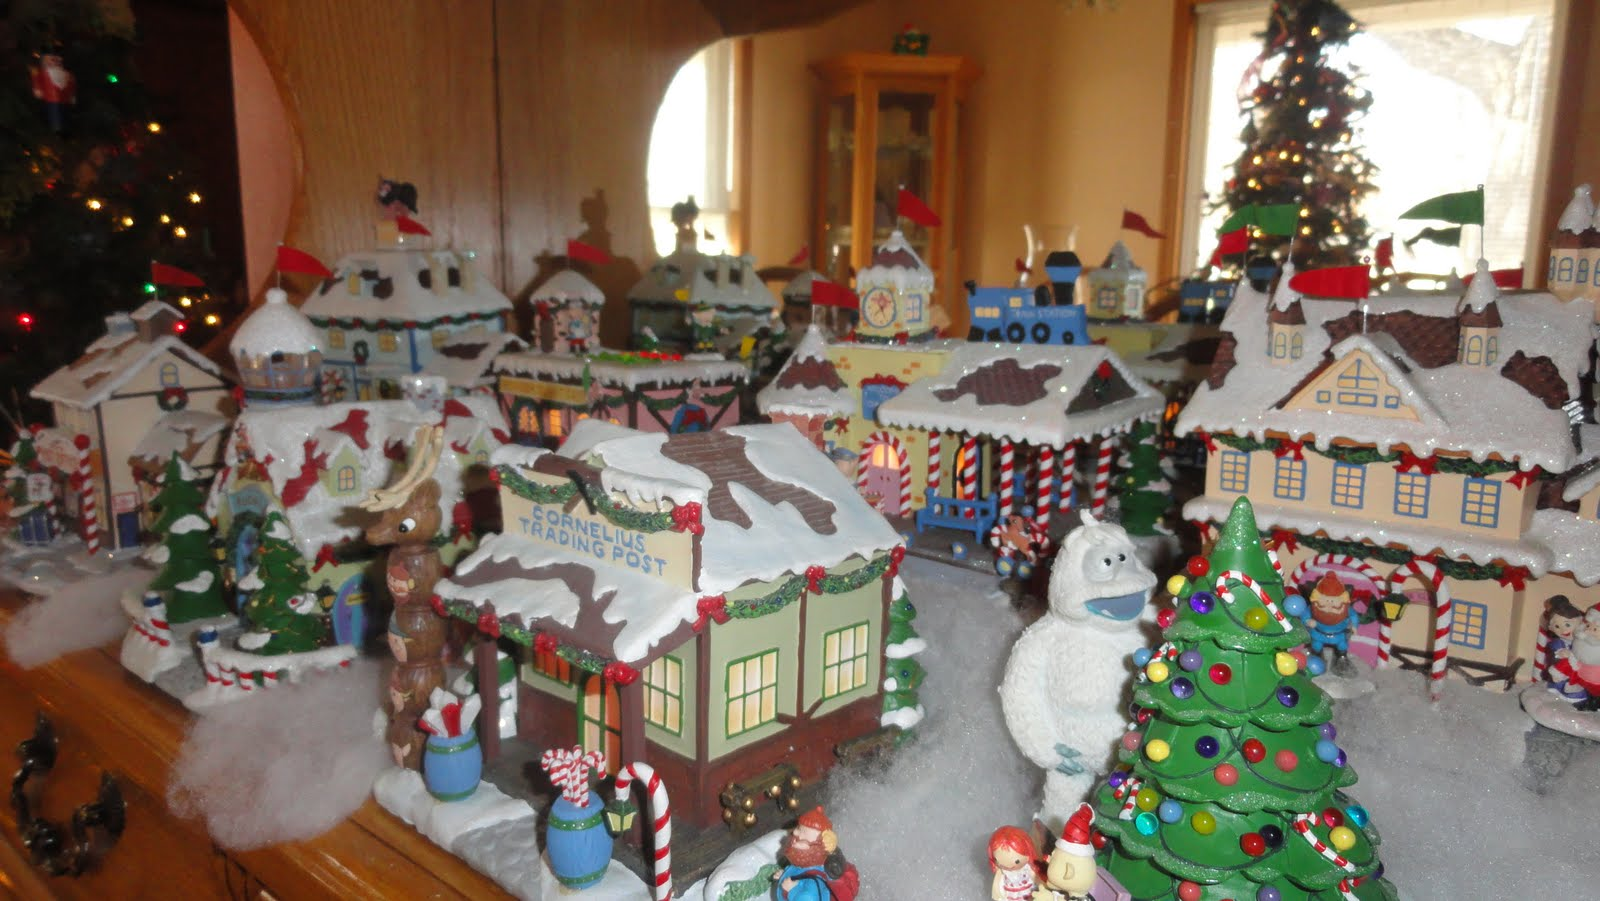 Rudolph Christmas Village.Christmas Town Village Sets Merry Christmas And Happy New